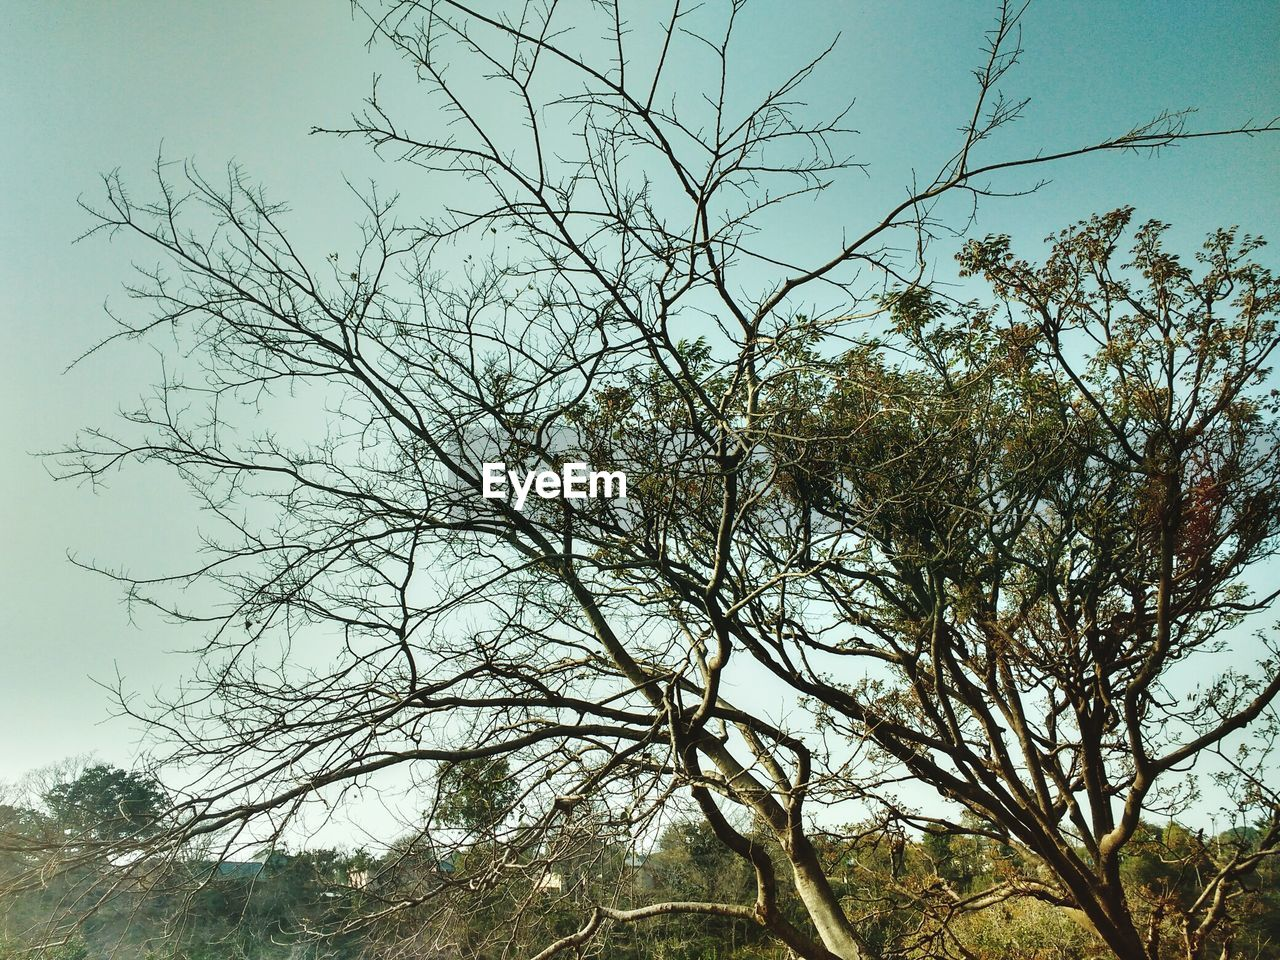 tree, low angle view, nature, outdoors, branch, beauty in nature, bare tree, no people, tranquility, day, clear sky, sky, scenics, growth